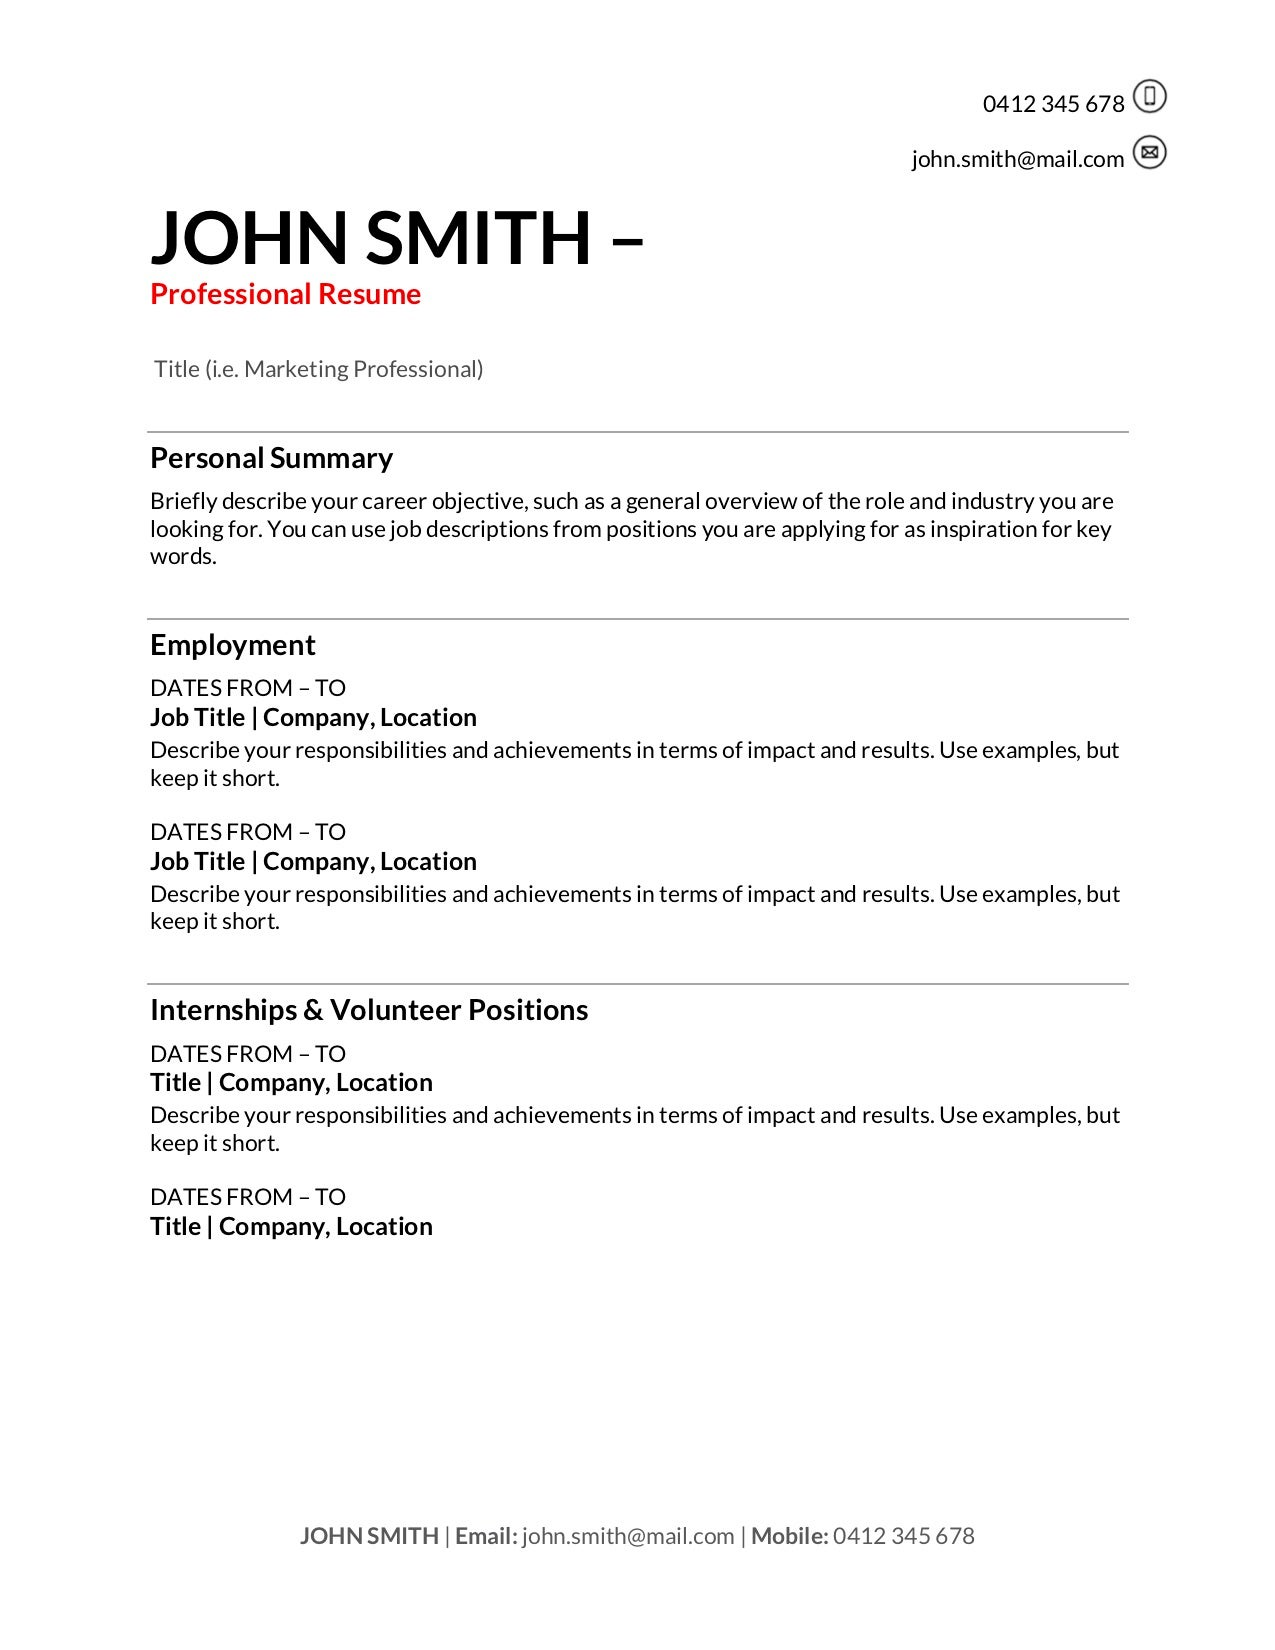 free resume templates to write in training au for first time job seekers optimal uga Resume Free Resume Templates For First Time Job Seekers